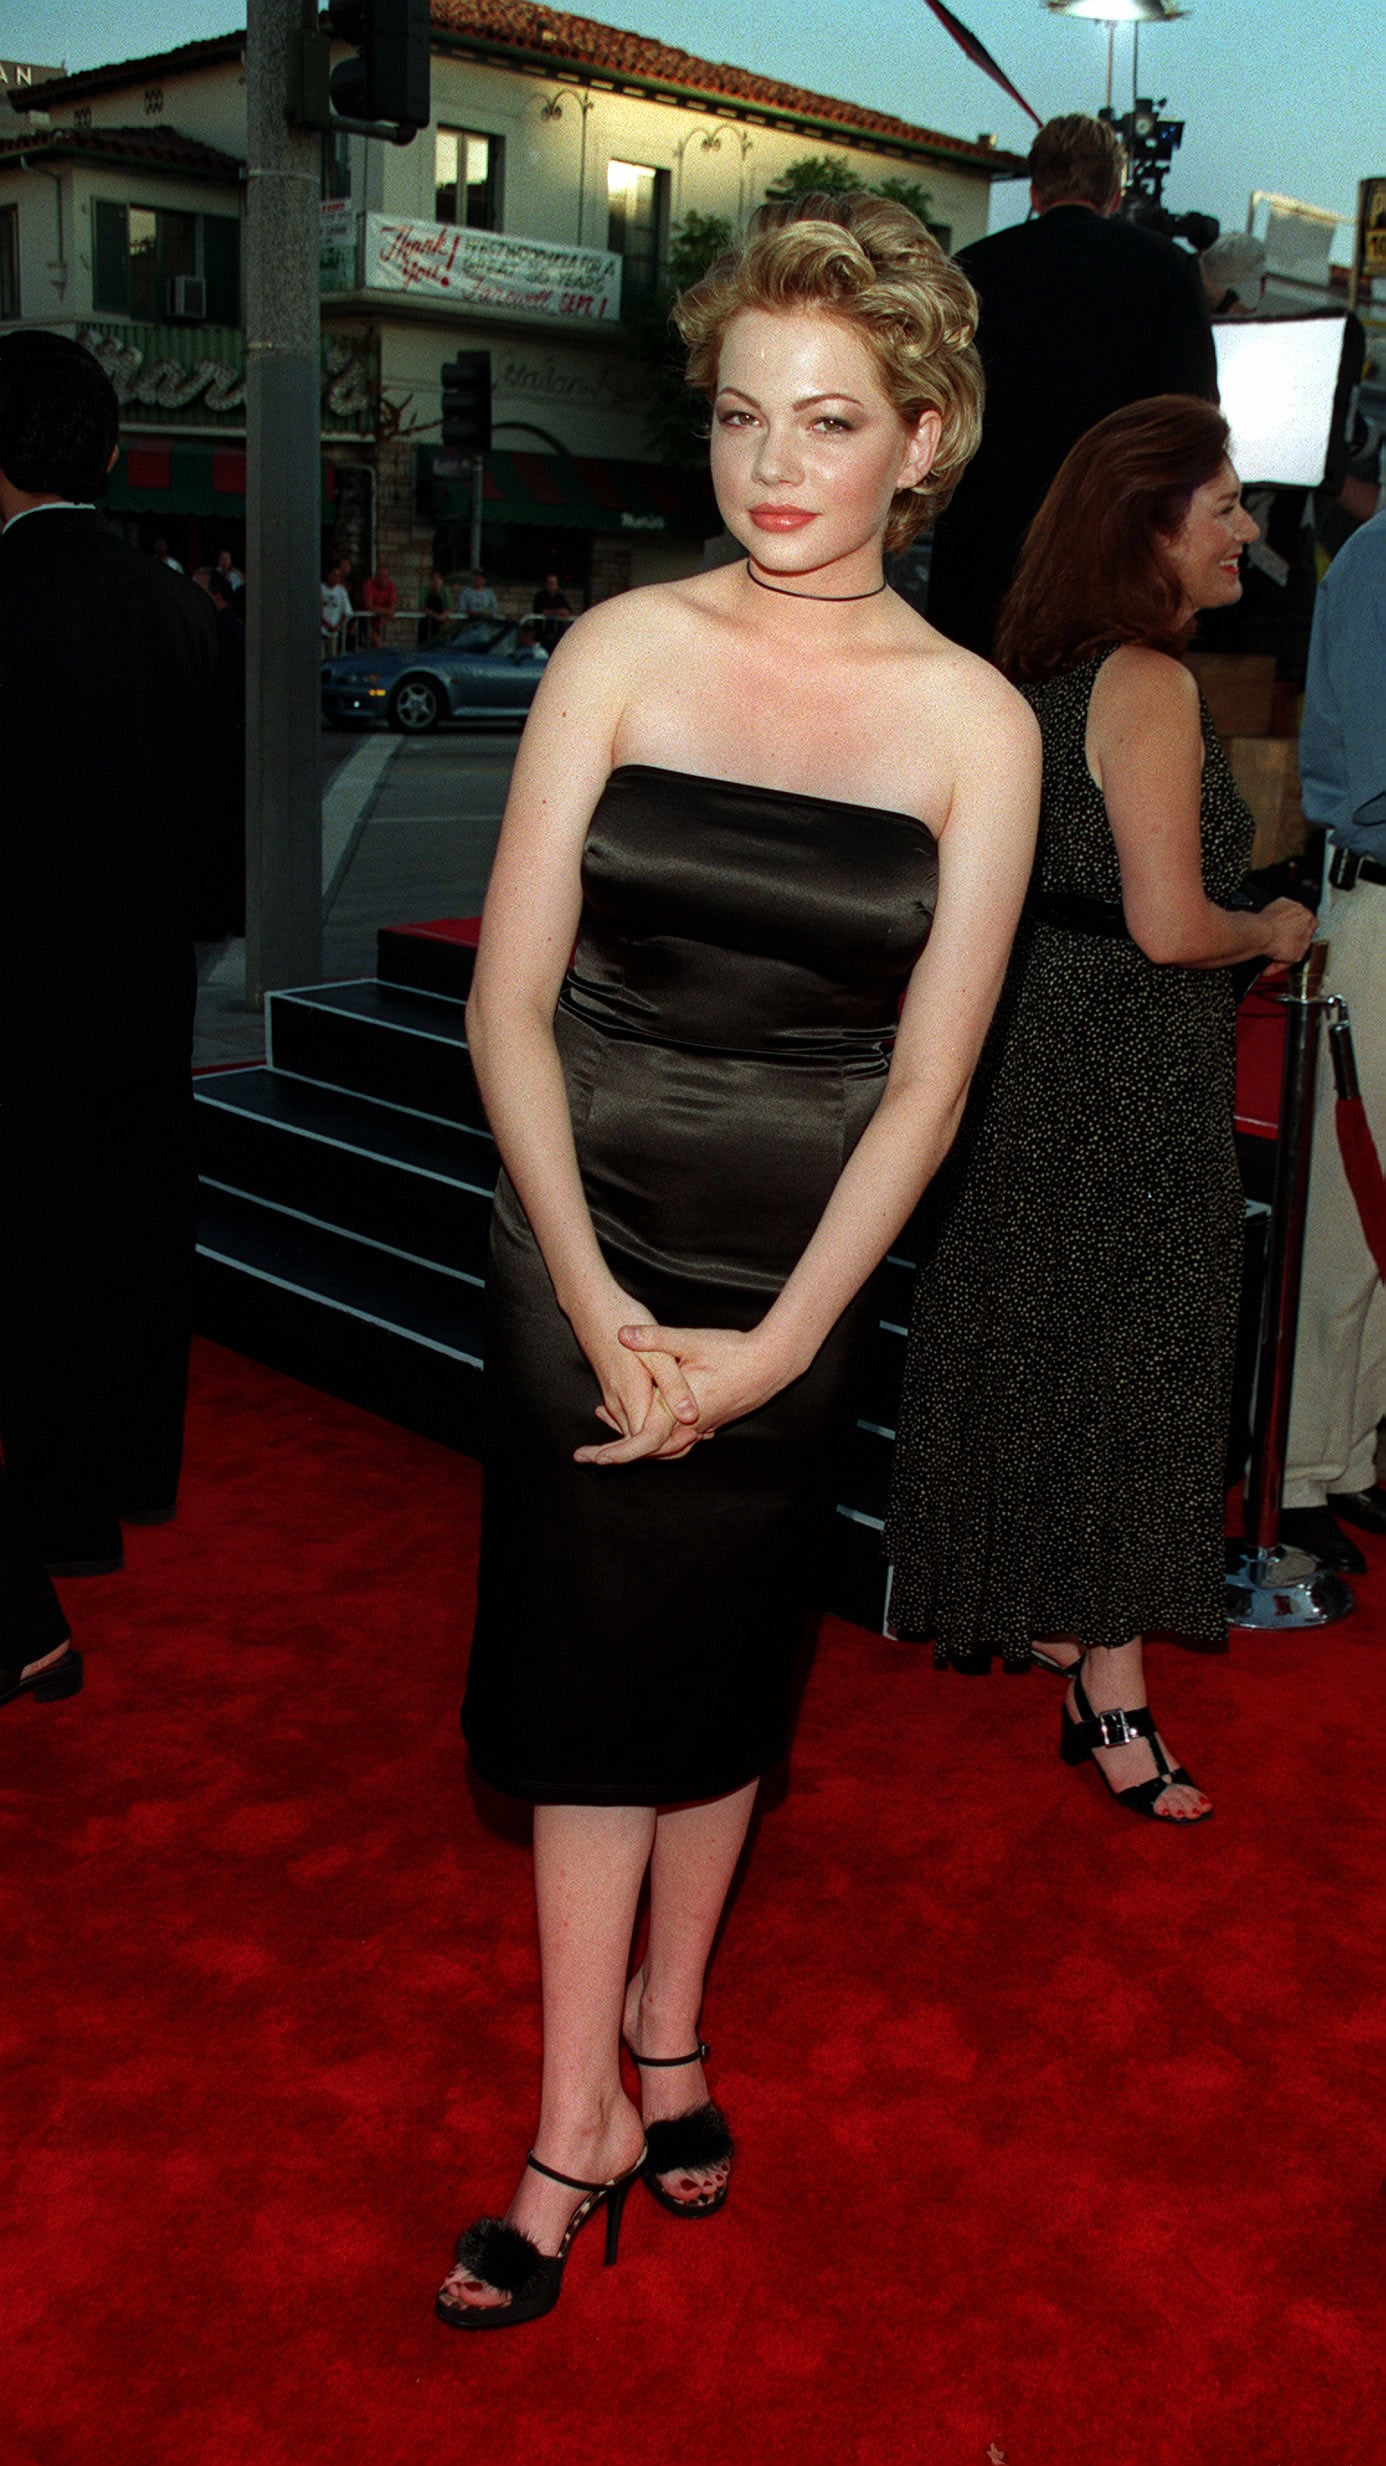 Michelle Williams Pictures Over the Years | POPSUGAR Celebrity